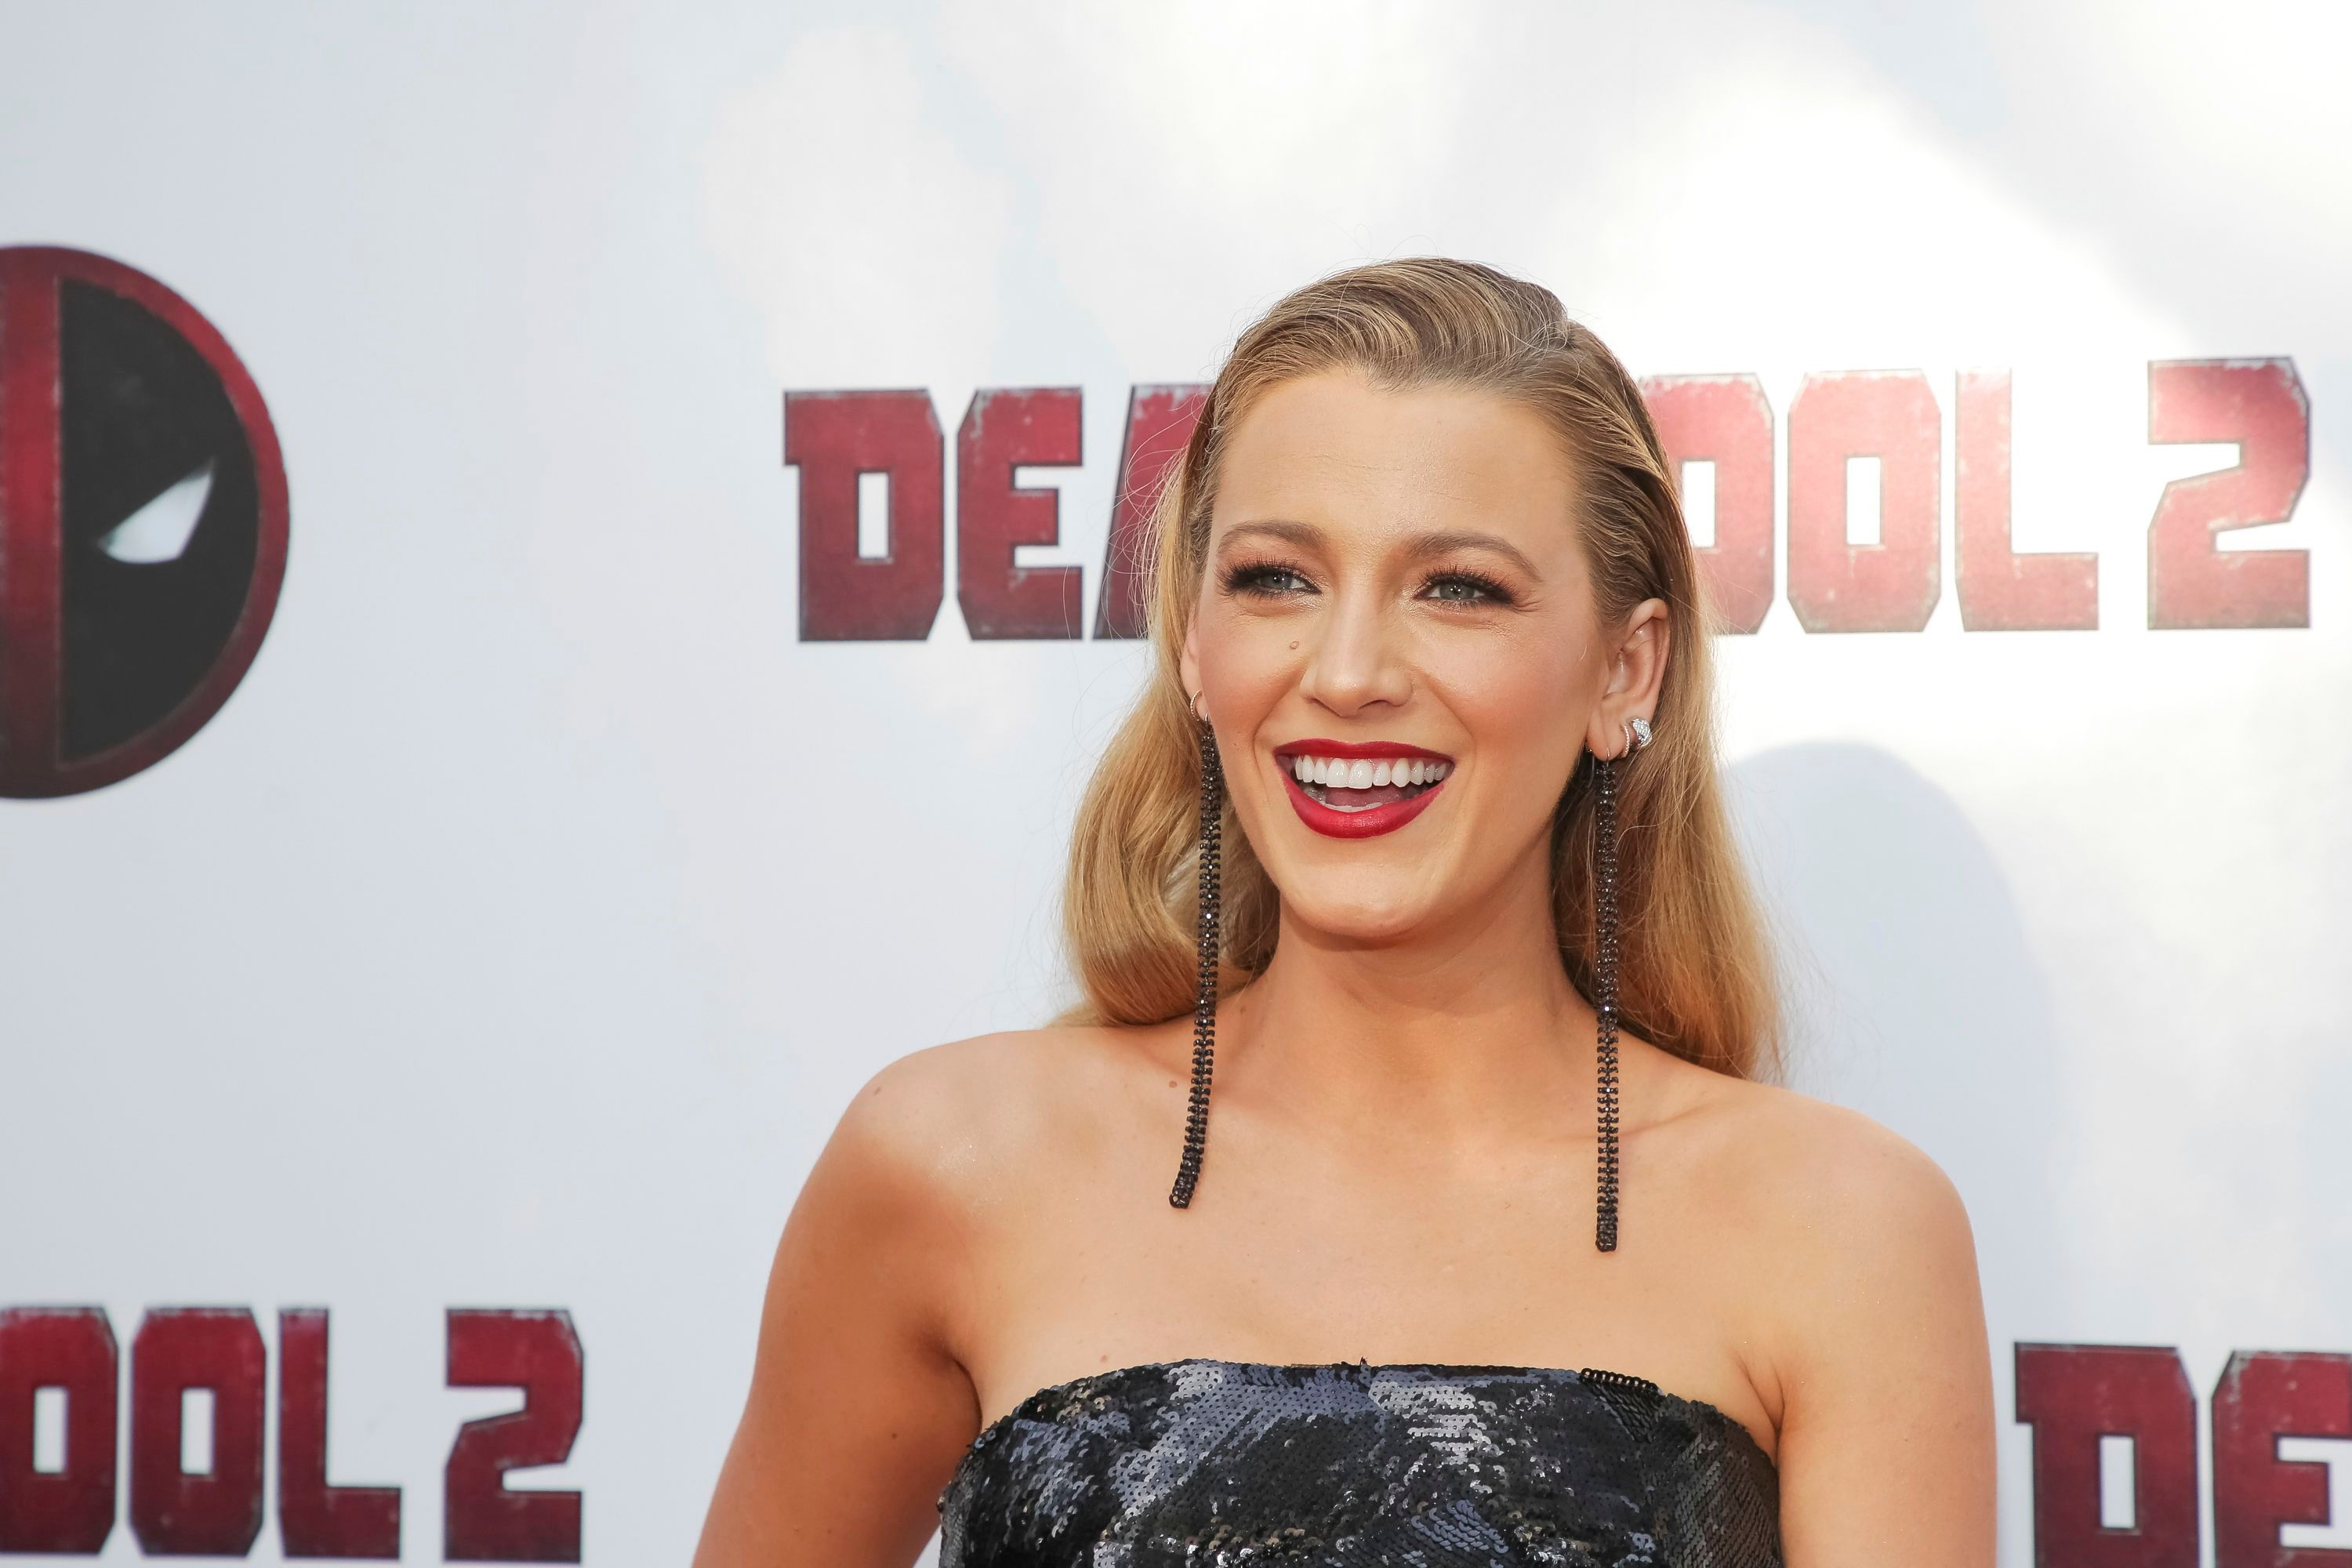 Blake Lively Reminisces on Her Toned Abs Prior to Giving Birth to Her 3 Kids: 'I Miss Us'